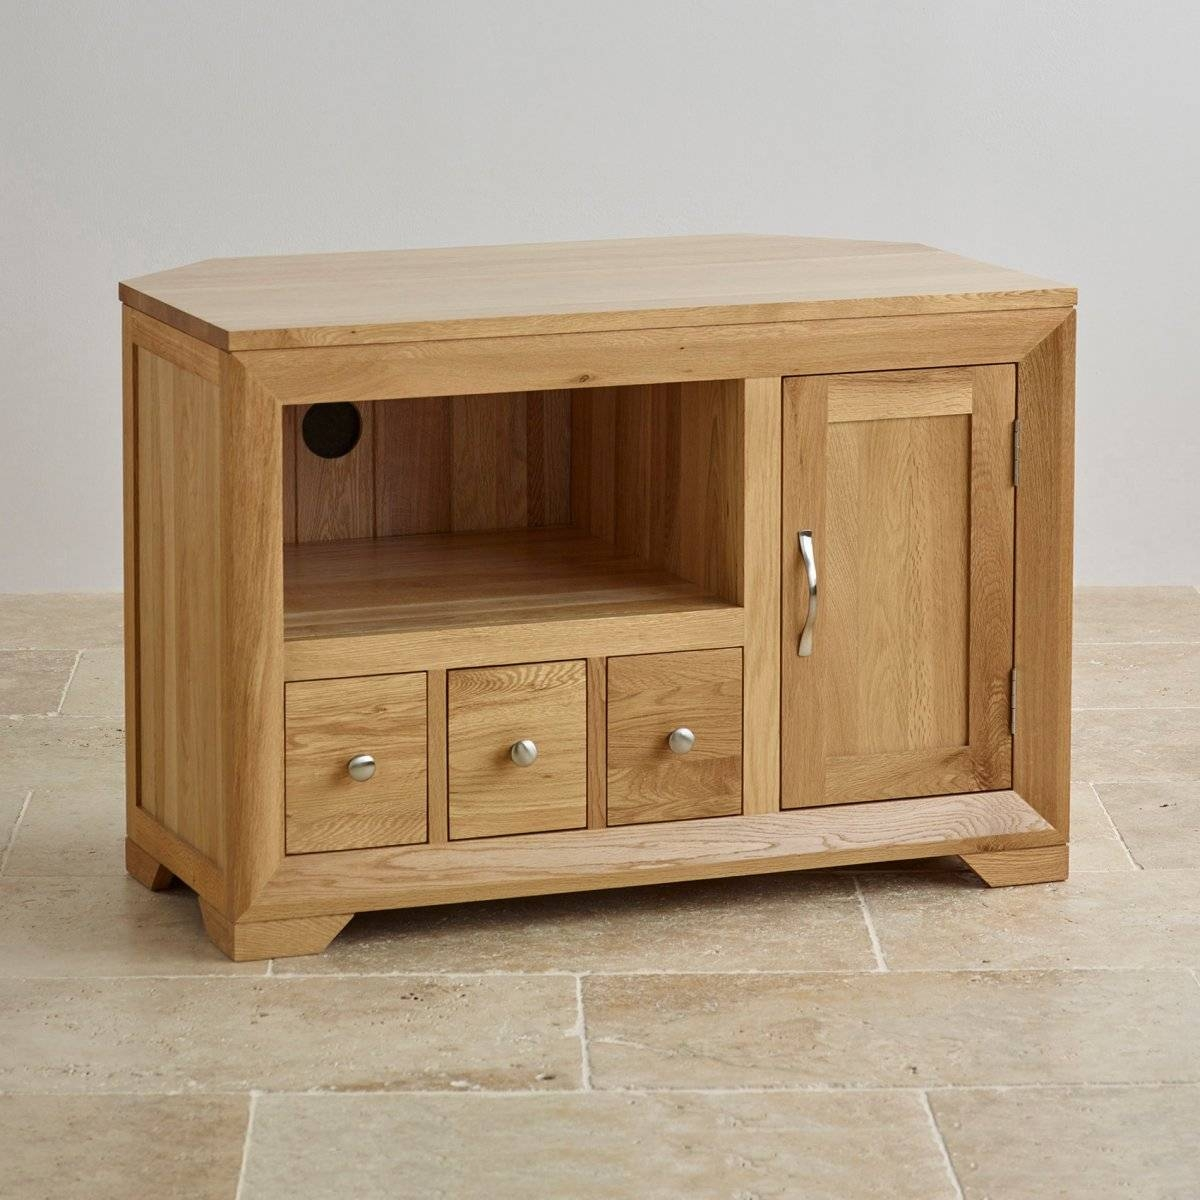 Bevel Small Corner Tv Cabinet In Solid Oak | Oak Furniture Land in Corner Tv Cabinets (Image 2 of 15)